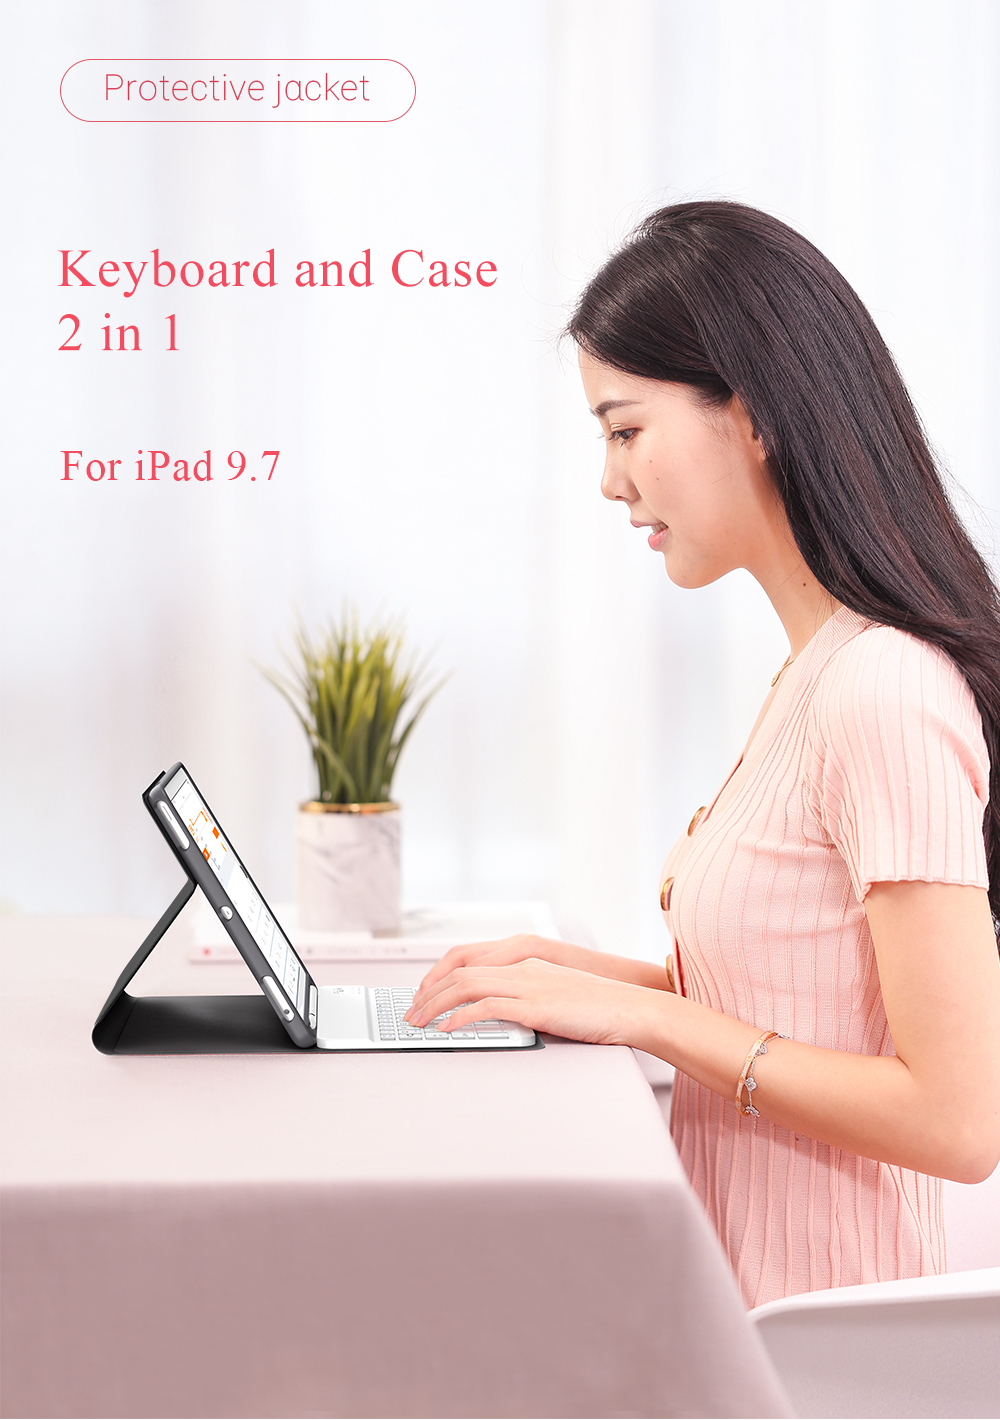 Auto Sleep Detachable bluetooth Wireless Keyboard Kickstand Tablet Case With Pencil Holder For iPad 9.7 Inch 2018/iPad 9.7 Inch 2017/iPad Air/iPad Air 2/iPad Pro 9.7 Inch